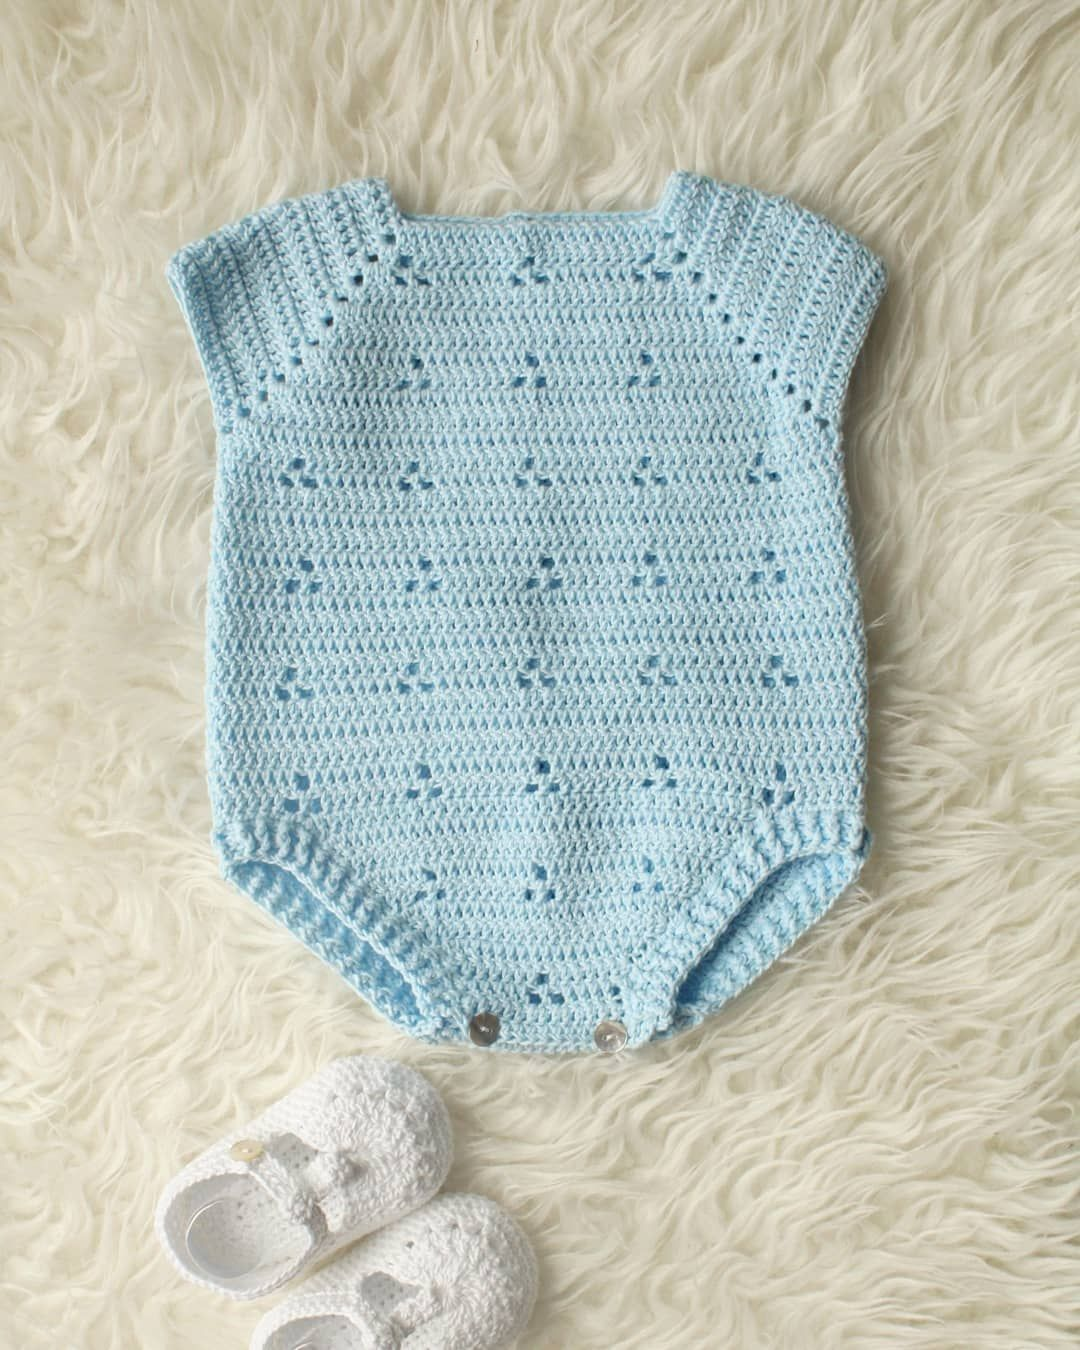 Free Crochet Patterns for Baby Items for New Year 2019  Page 36 of 50 is part of Baby Clothes Patterns - There is no better project than baby sweaters and more clothes  They are adorable before even caring for the baby, and then the little baby makes your job even cuter  Although they look like intricate crochet projects that will delight any parent, baby crochet sweaters are pretty easy to build  These are also very special …